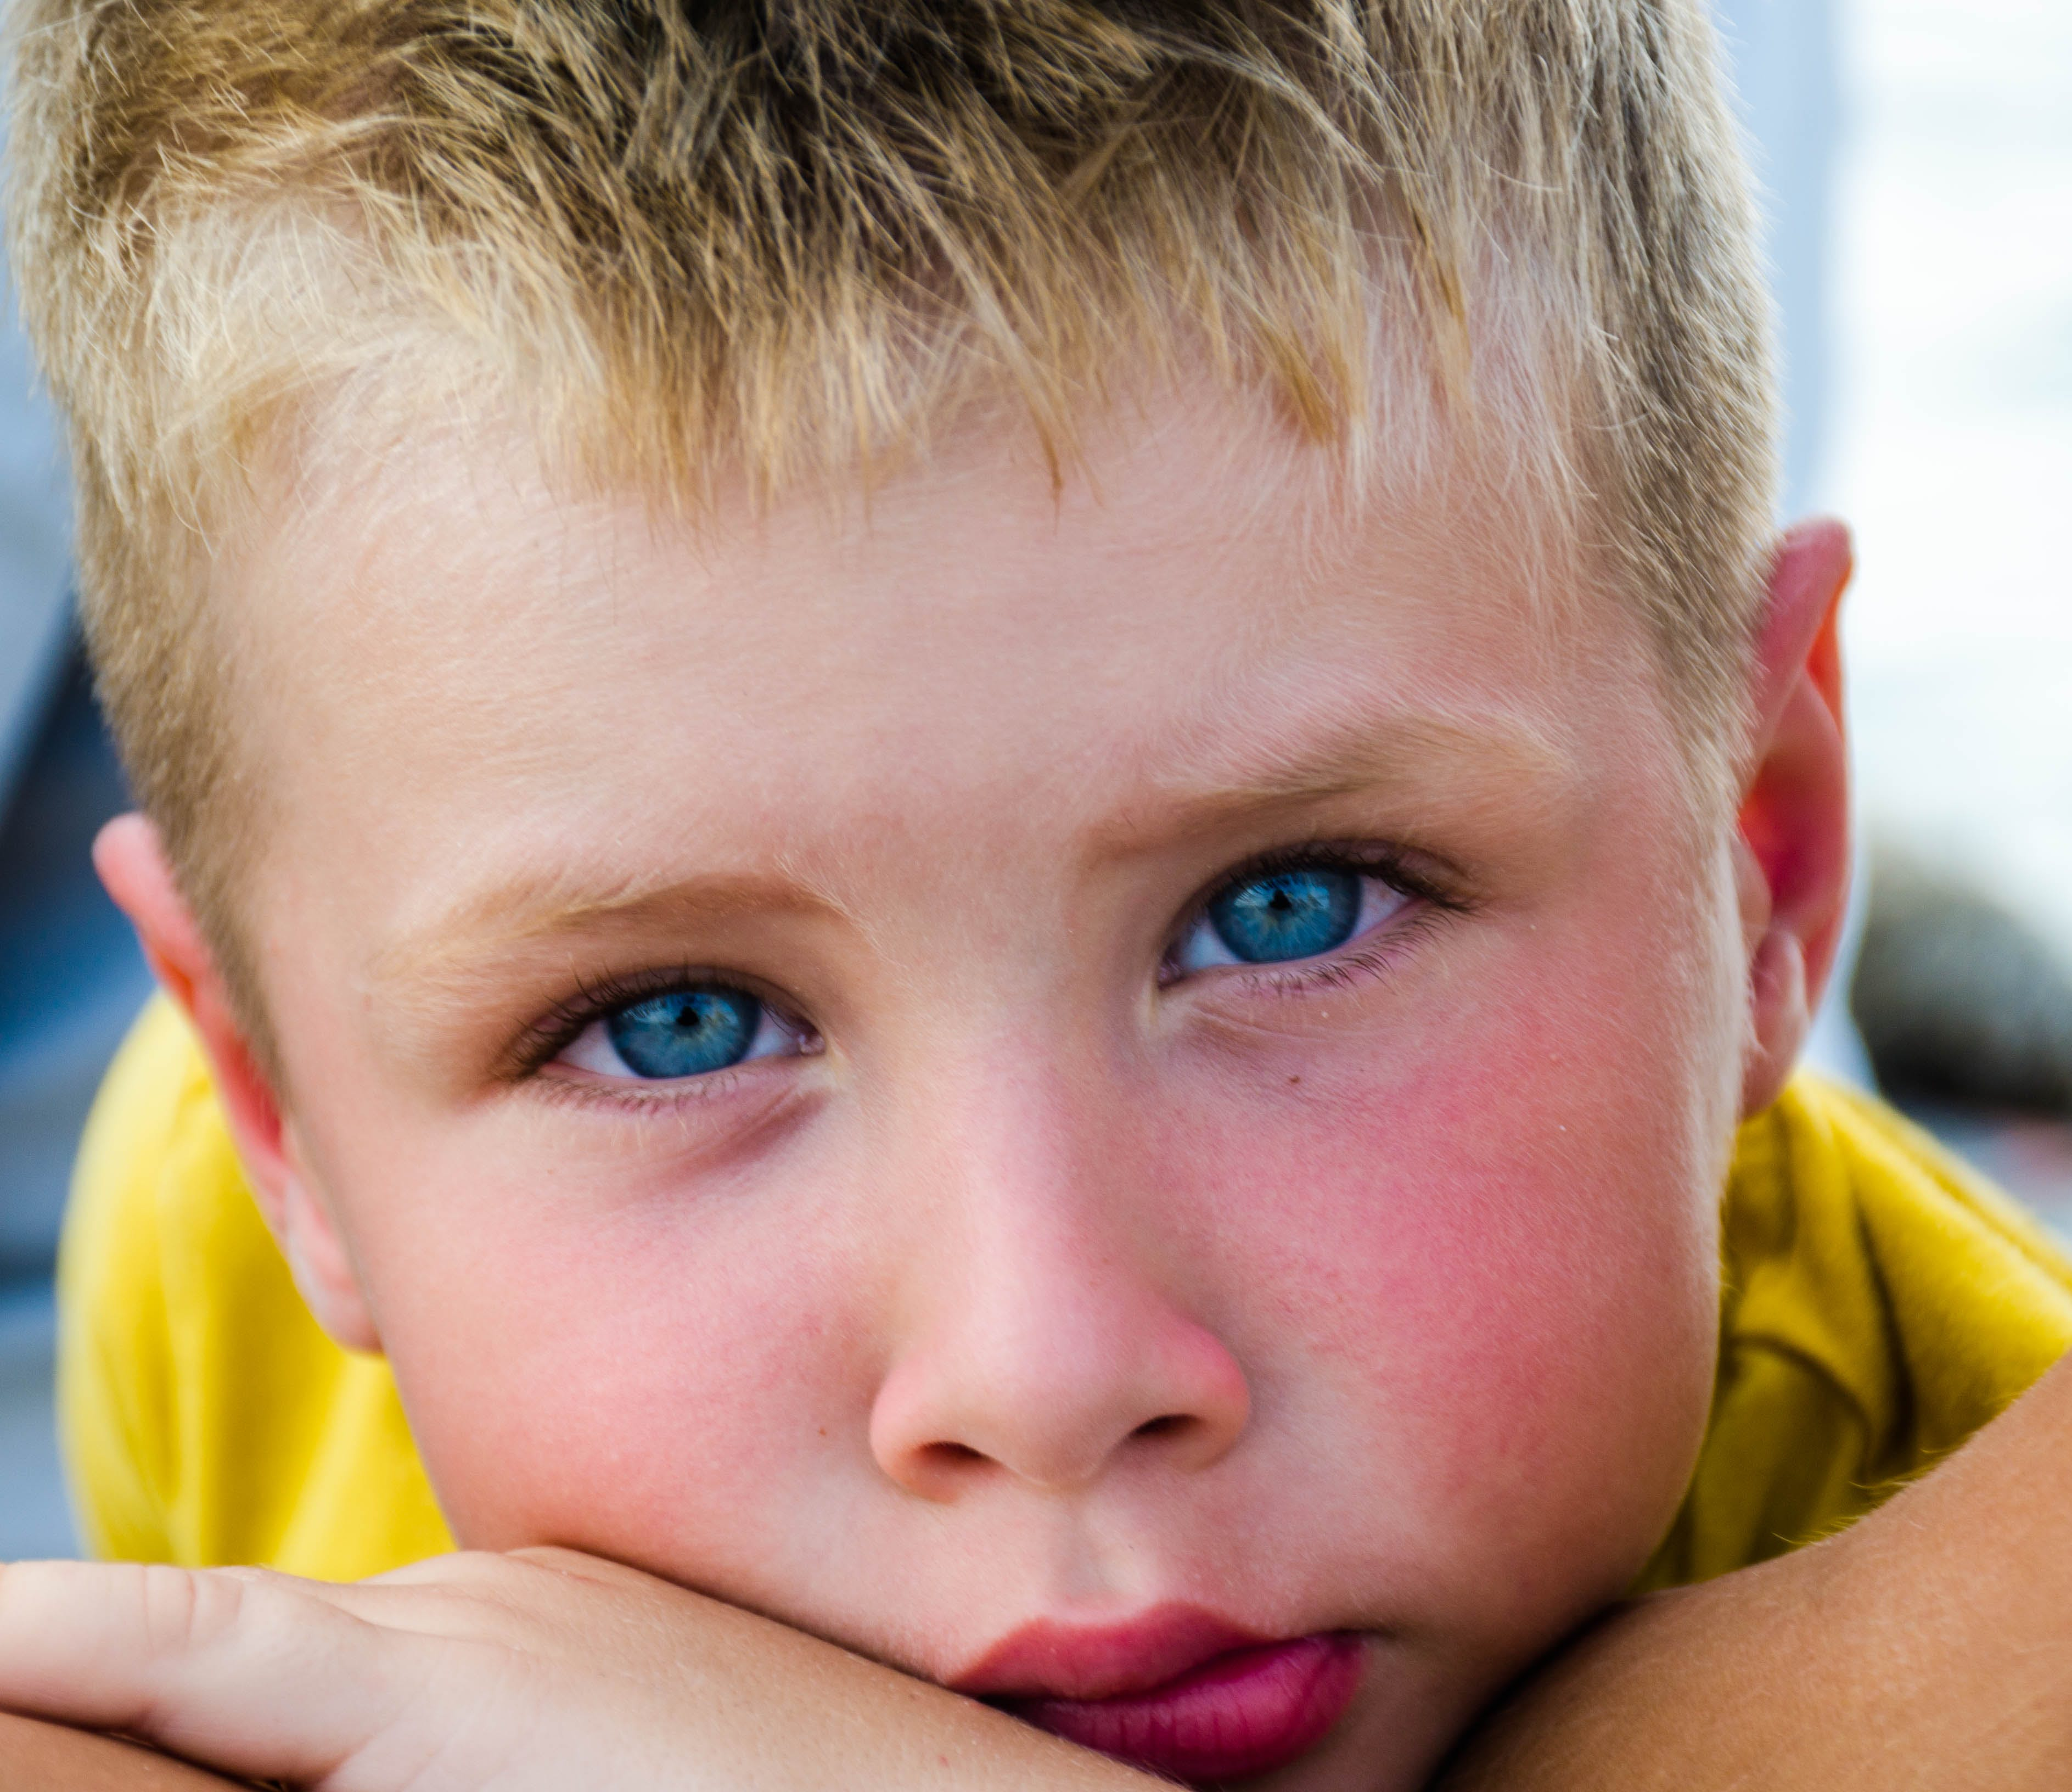 Close-Up Photography of Boy With Blue Eyes